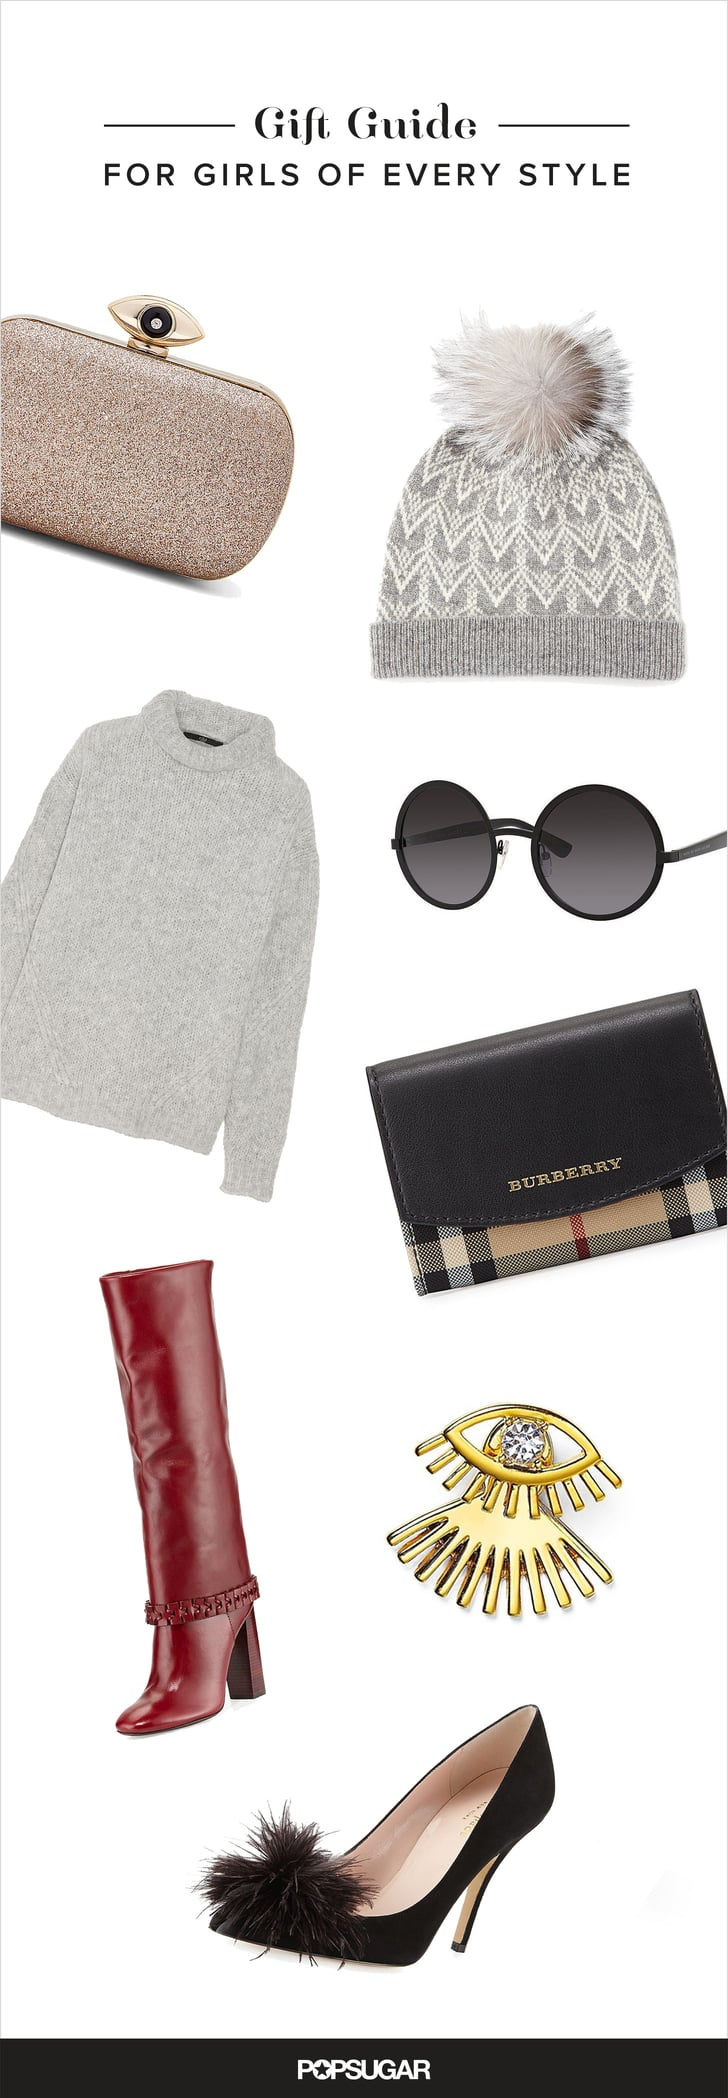 60+ Gifts For Girls of Every Style